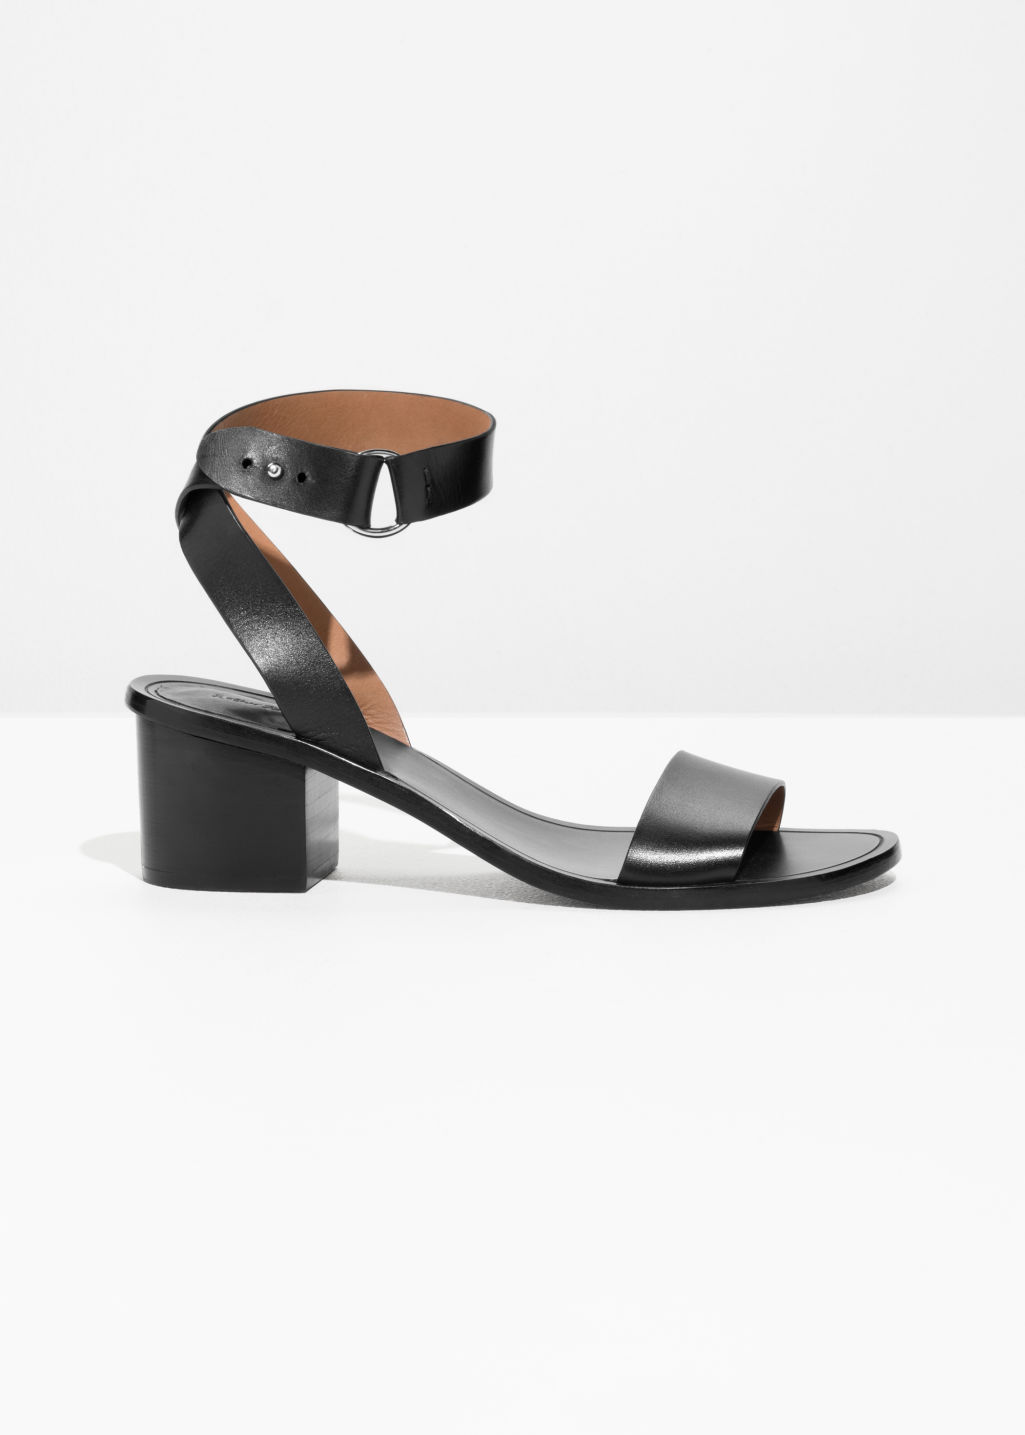 & OTHER STORIES Cross Ankle Strap Heeled Sandals 9zweJuSBy